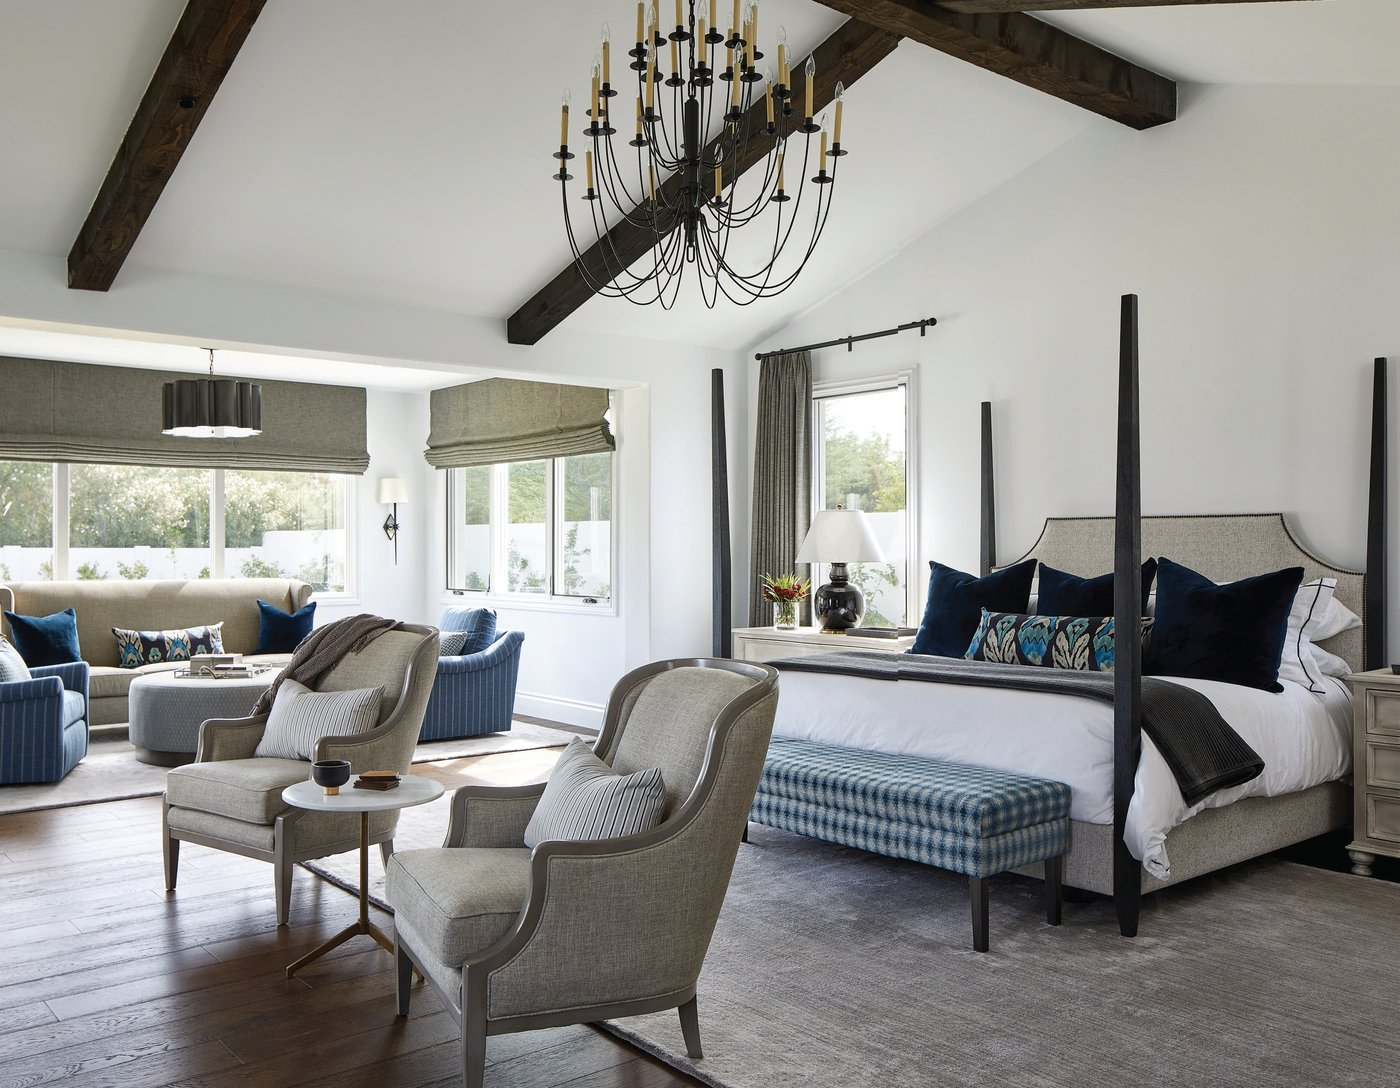 With its separate seating area, wood beams and fireplace, there is no detail missing in this cozy main bedroom. Photographed by Laura Moss Photography